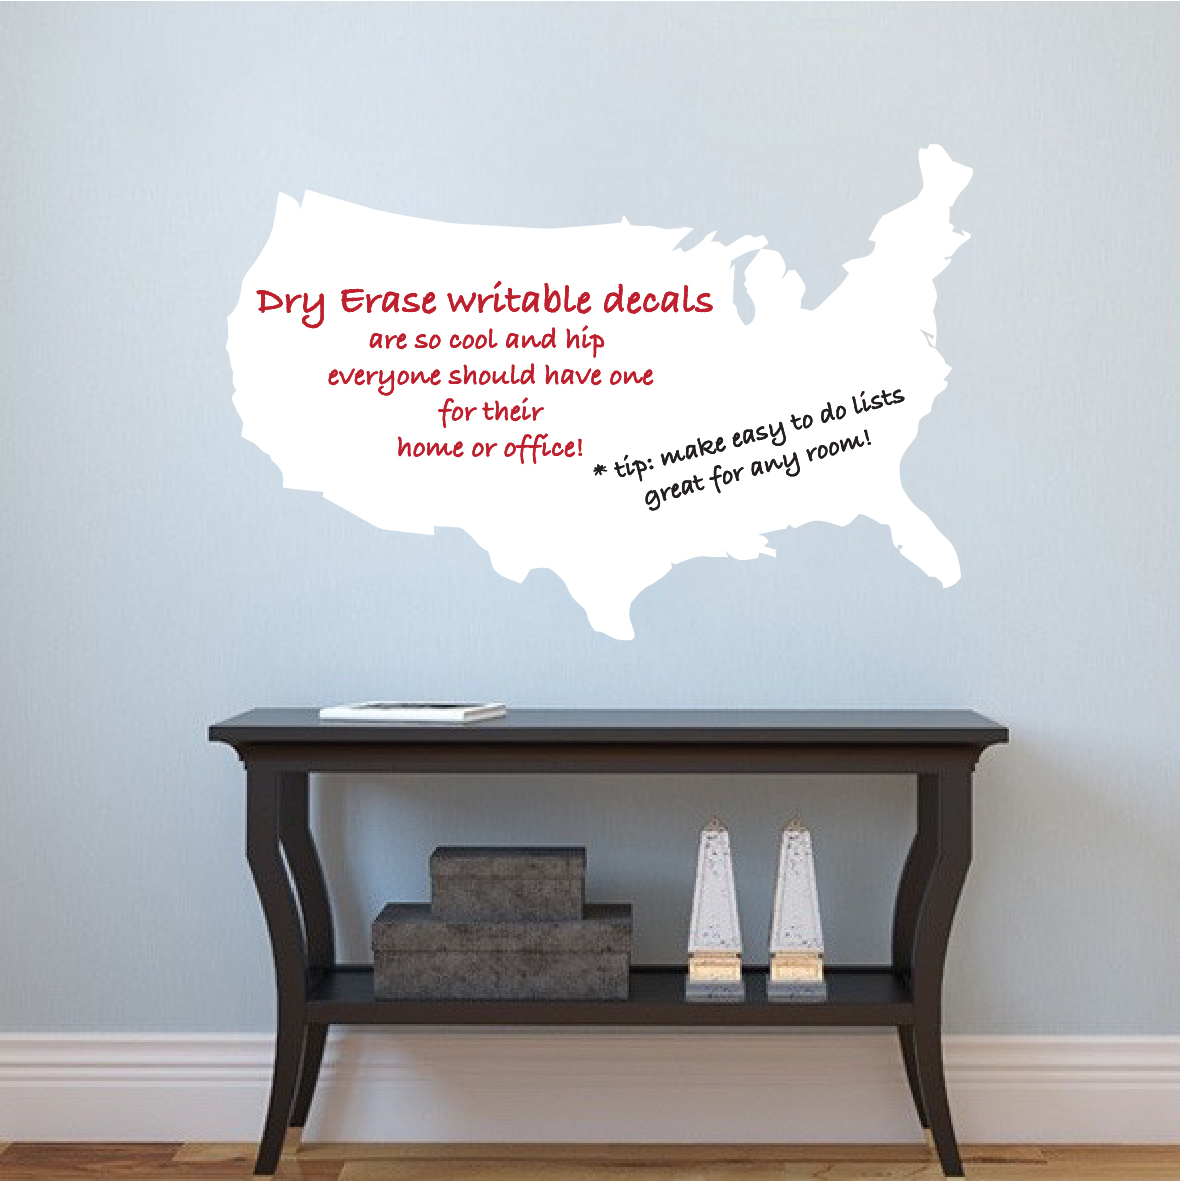 US Map Dry Erase Wall Decal Modern Wall Decal Murals Primedecals - Us map dry erase